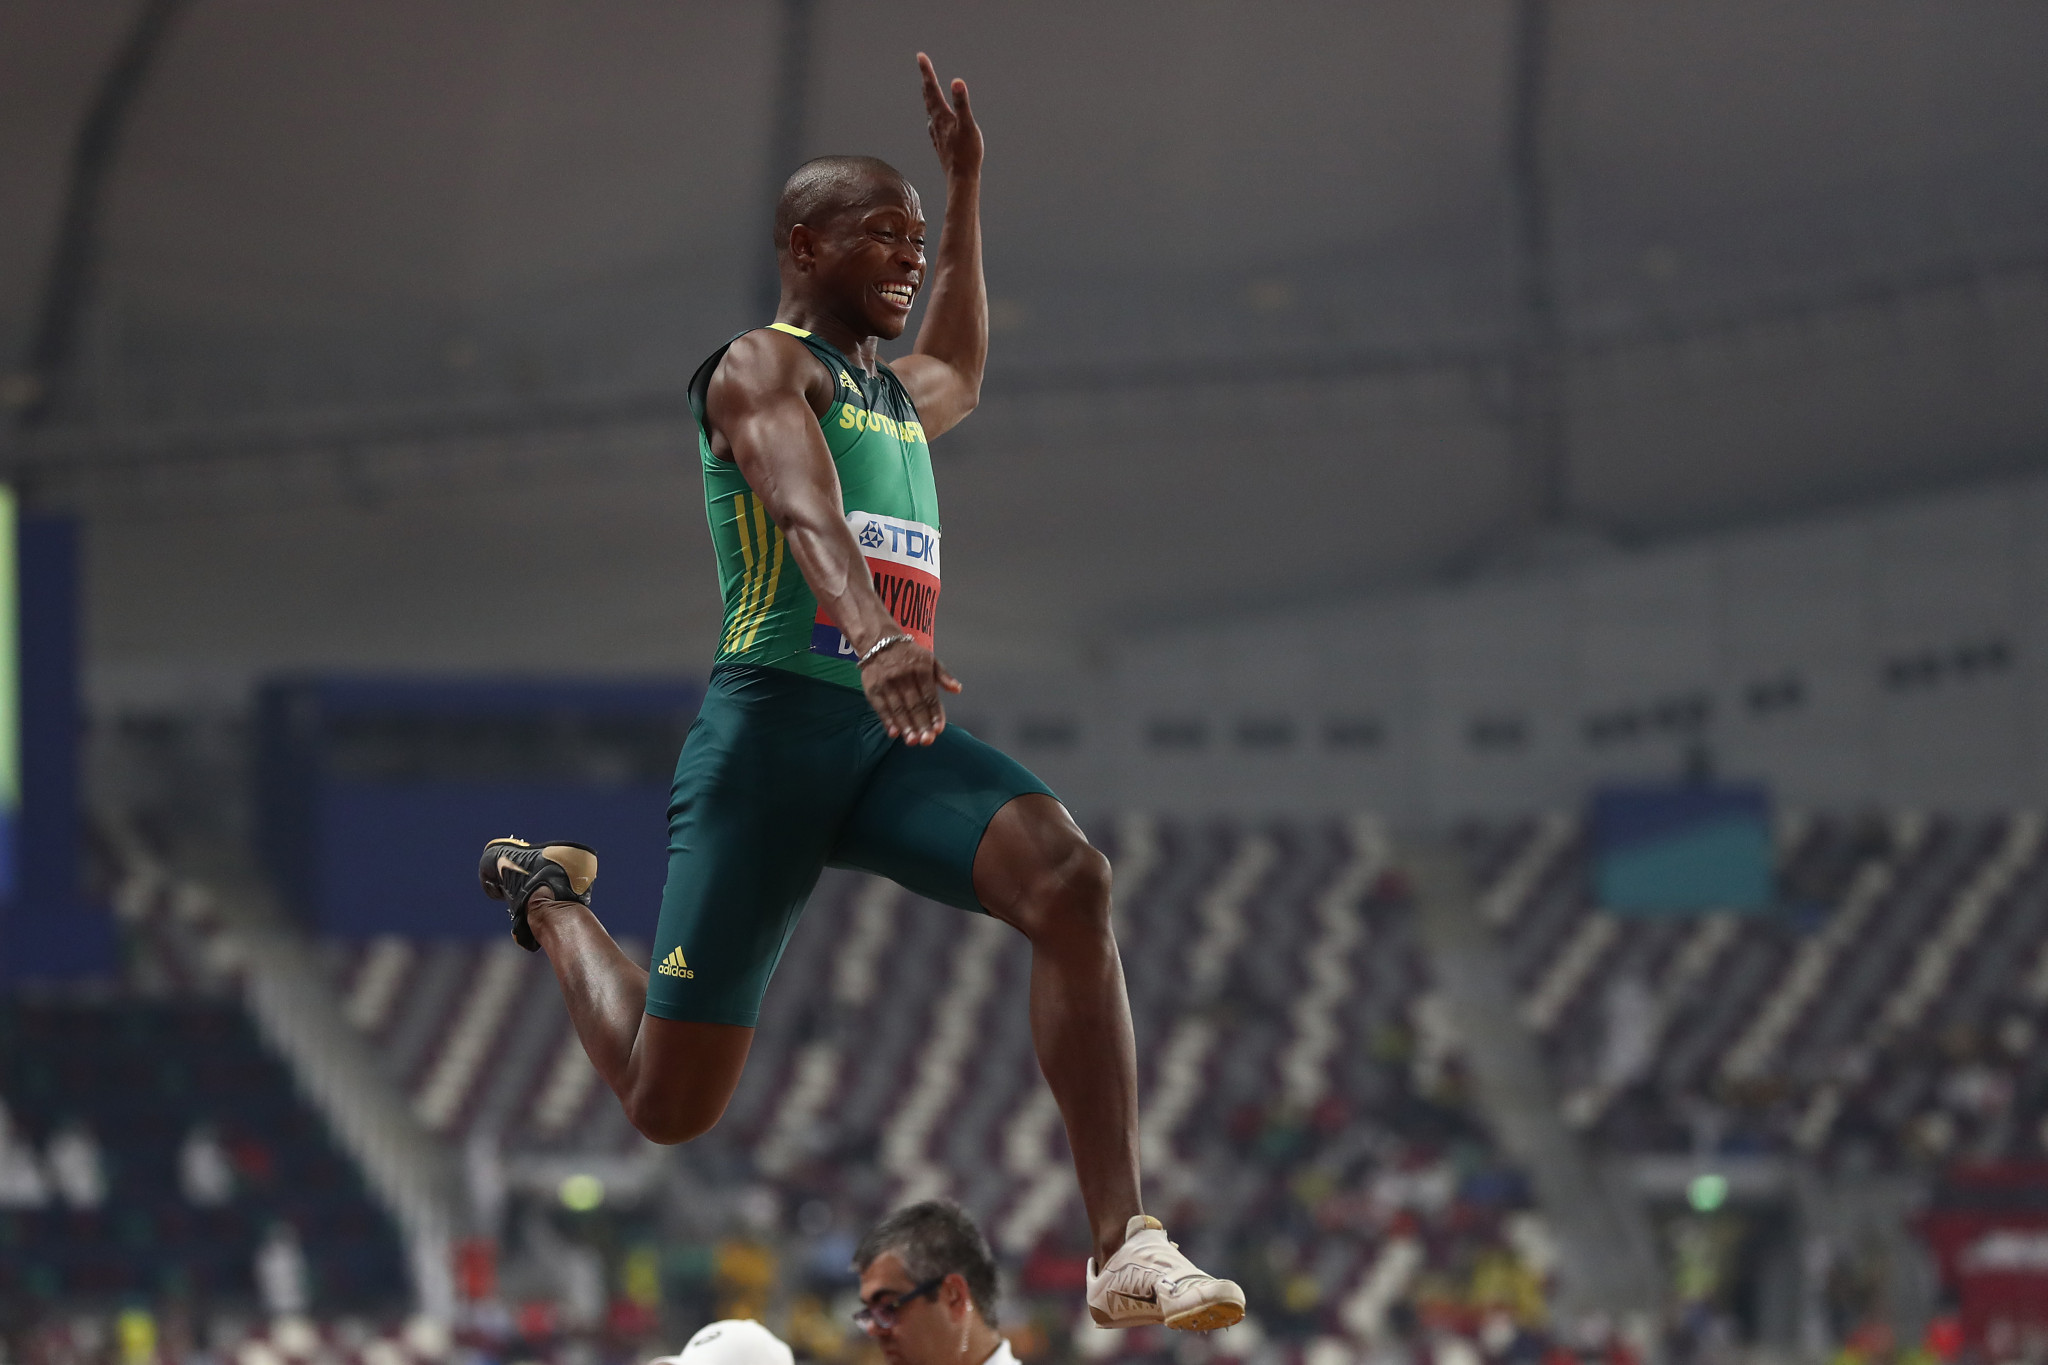 South African long jumper Manyonga fined for breaking lockdown rules